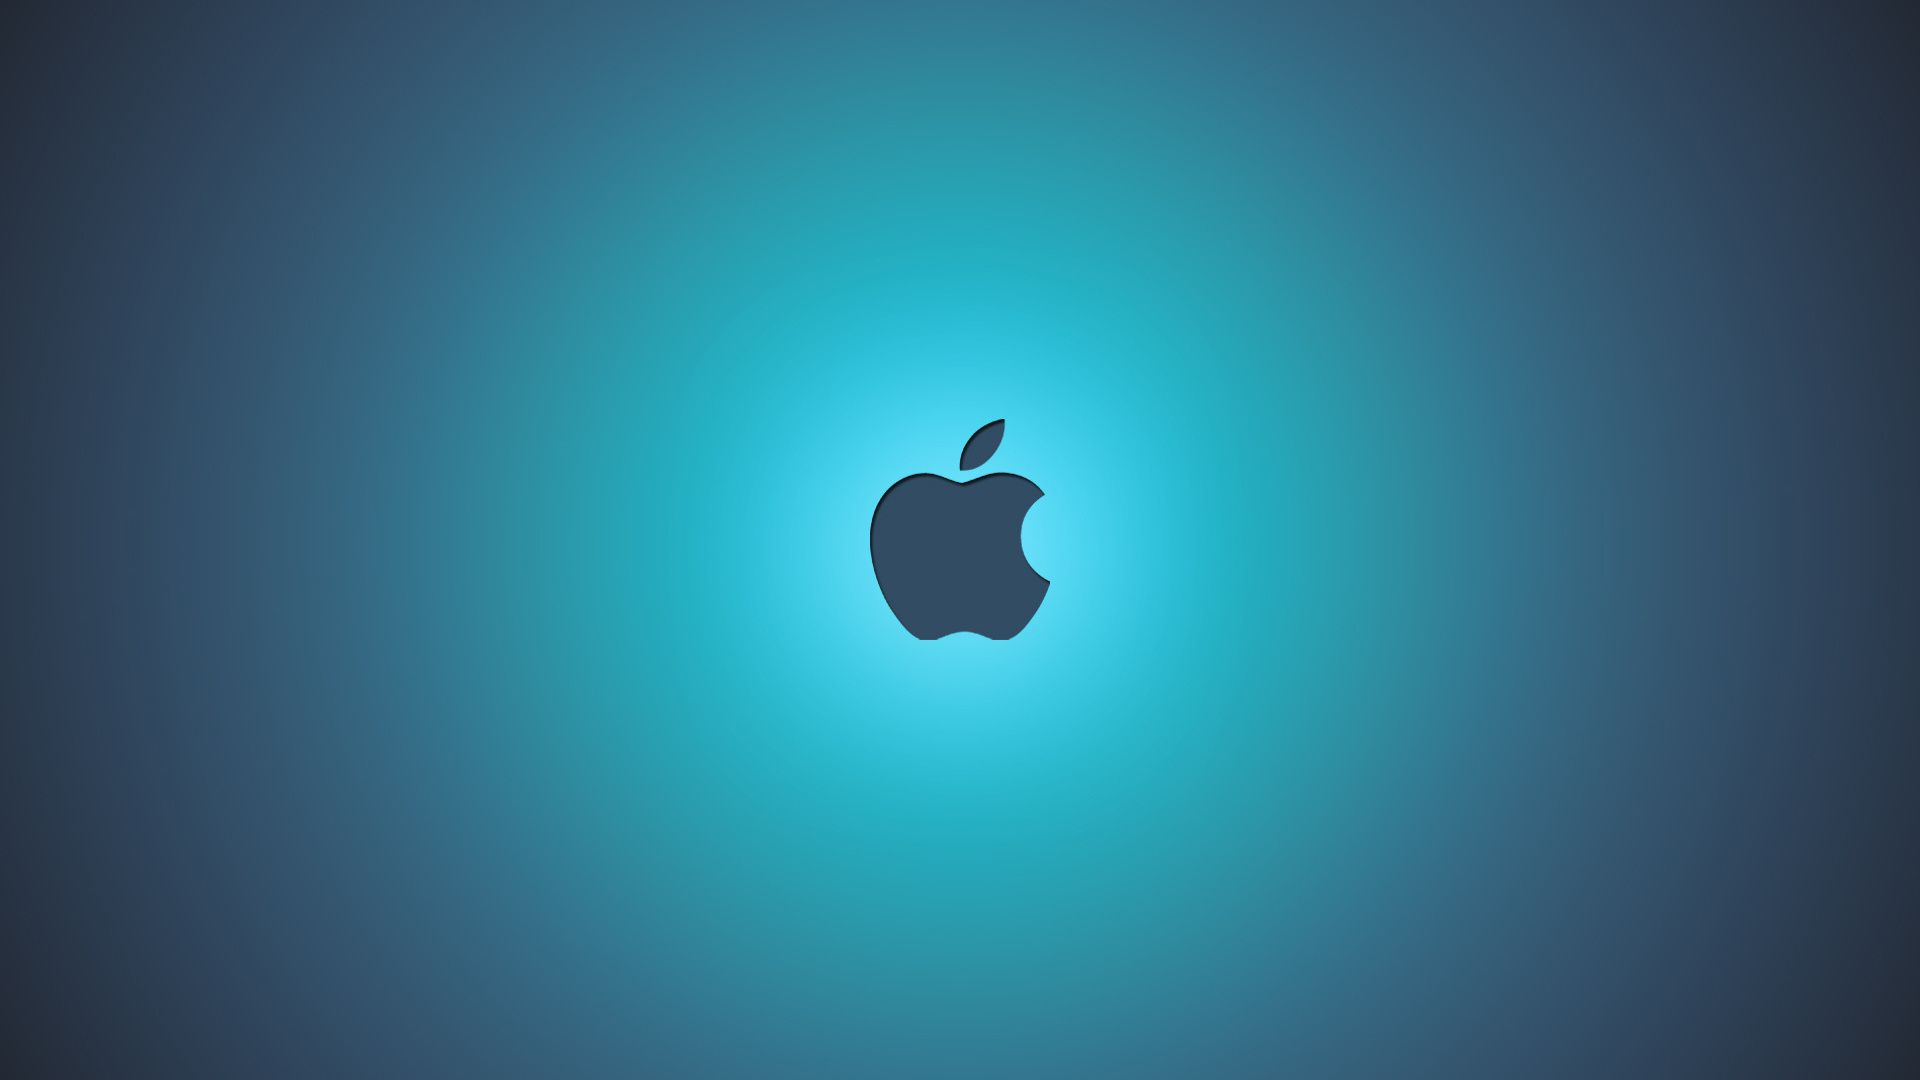 Apple Blue Background Wallpaper Desktop 6250 Wallpaper High Apple Wallpaper Blue Background Wallpapers Computer Wallpaper Hd